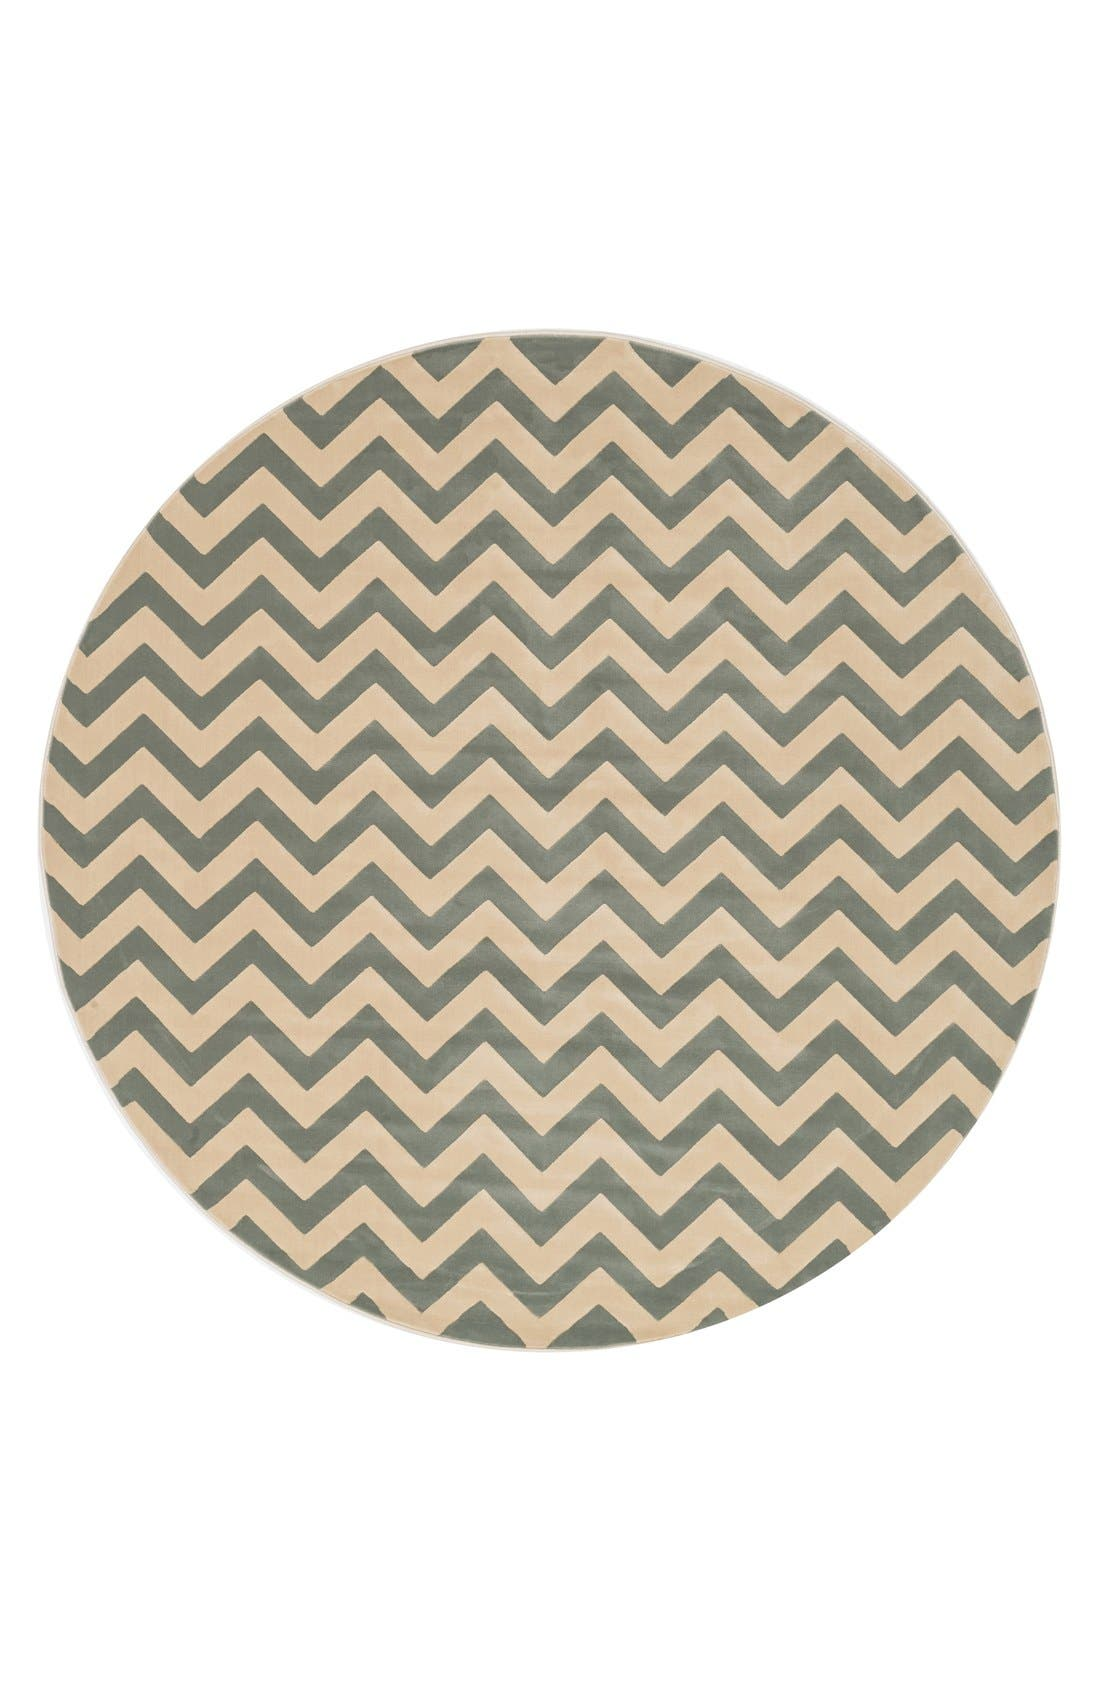 Alternate Image 1 Selected - Loloi 'Goodwin' Round Area Rug